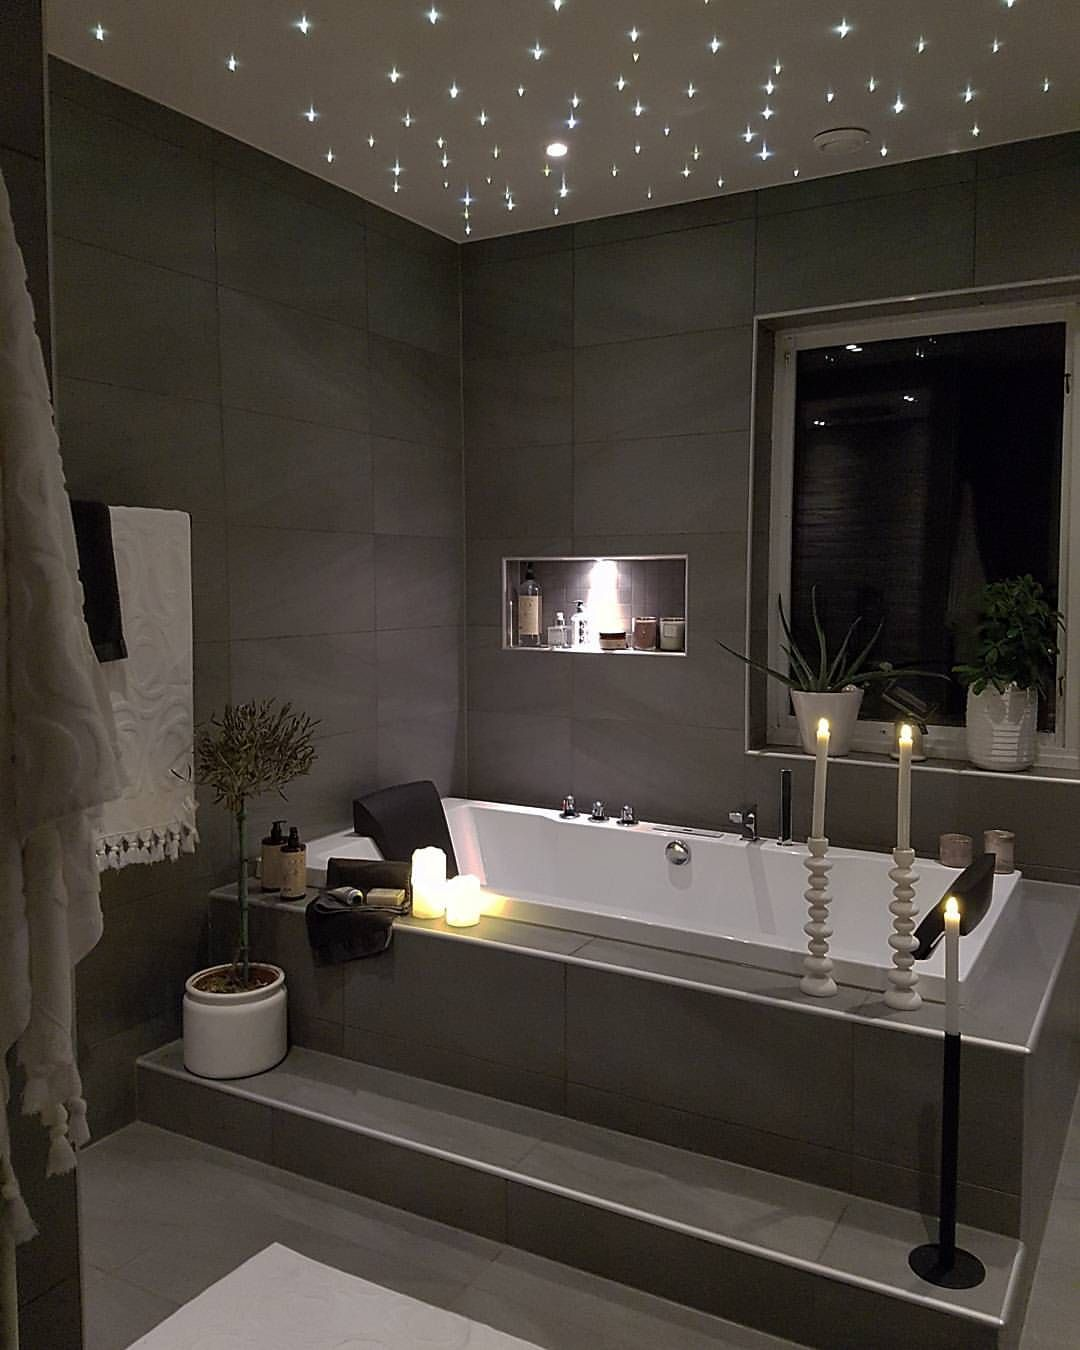 Bathroom Lights Make Me Look Ugly 30 luxury shower designs demonstrating latest trends in modern